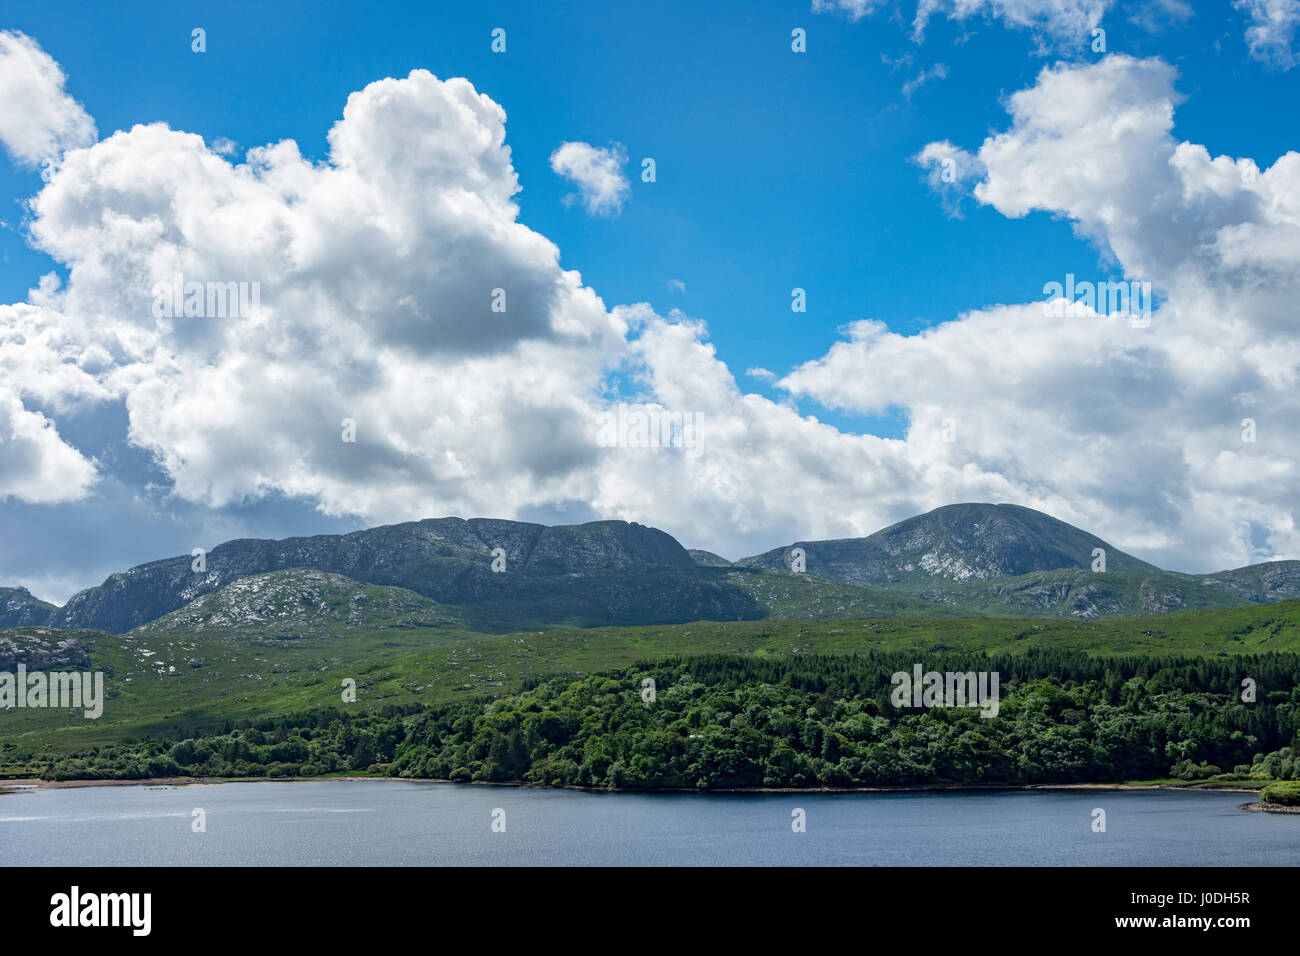 The Slieve Snaght range of the Derryveagh Mountains, over Dunlewy Lough, County Donegal, Ireland - Stock Image